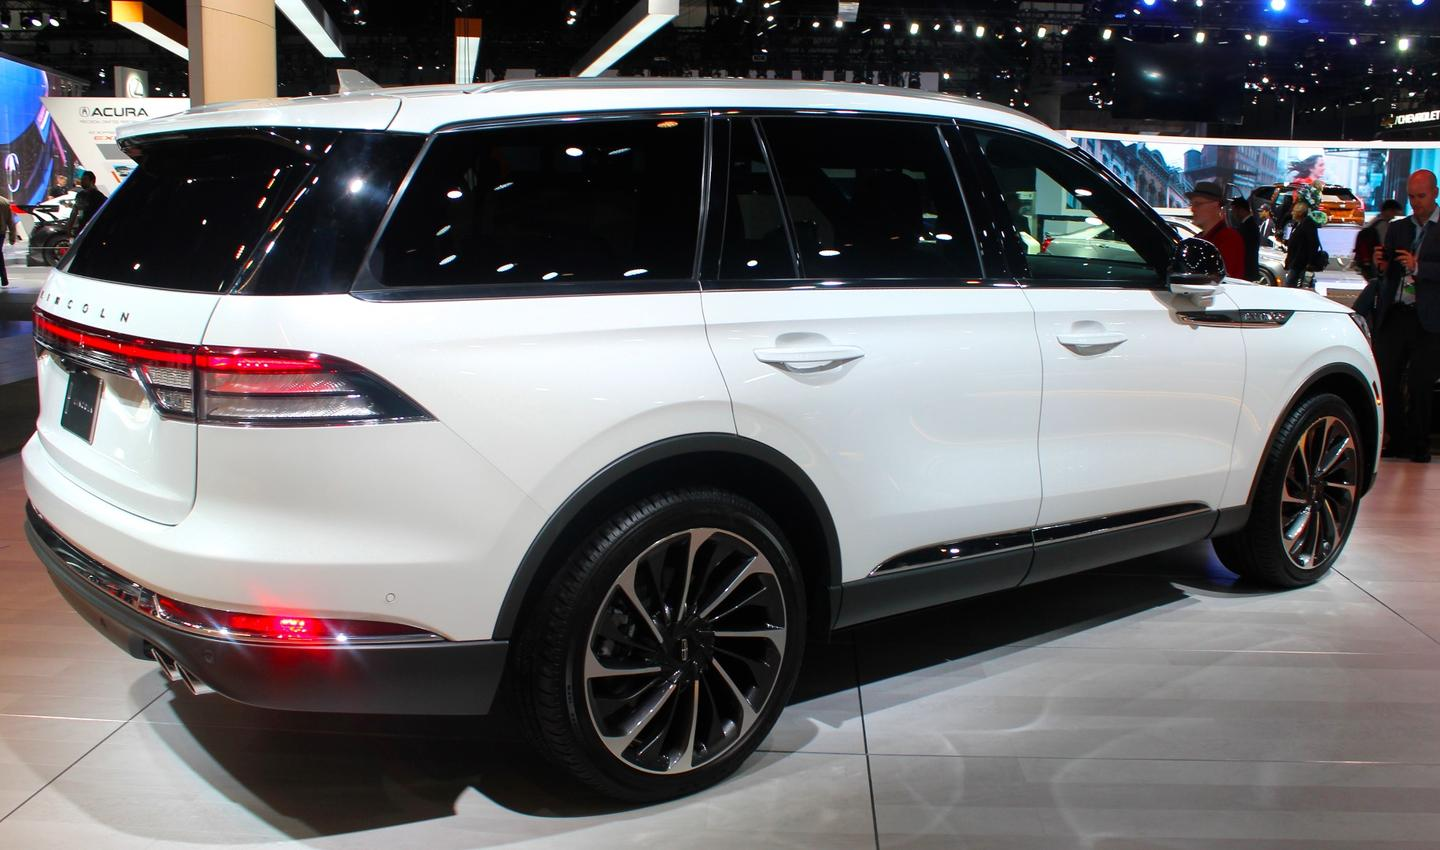 The Aviator has a much more sophisticated look than do other Lincoln crossovers and SUVs